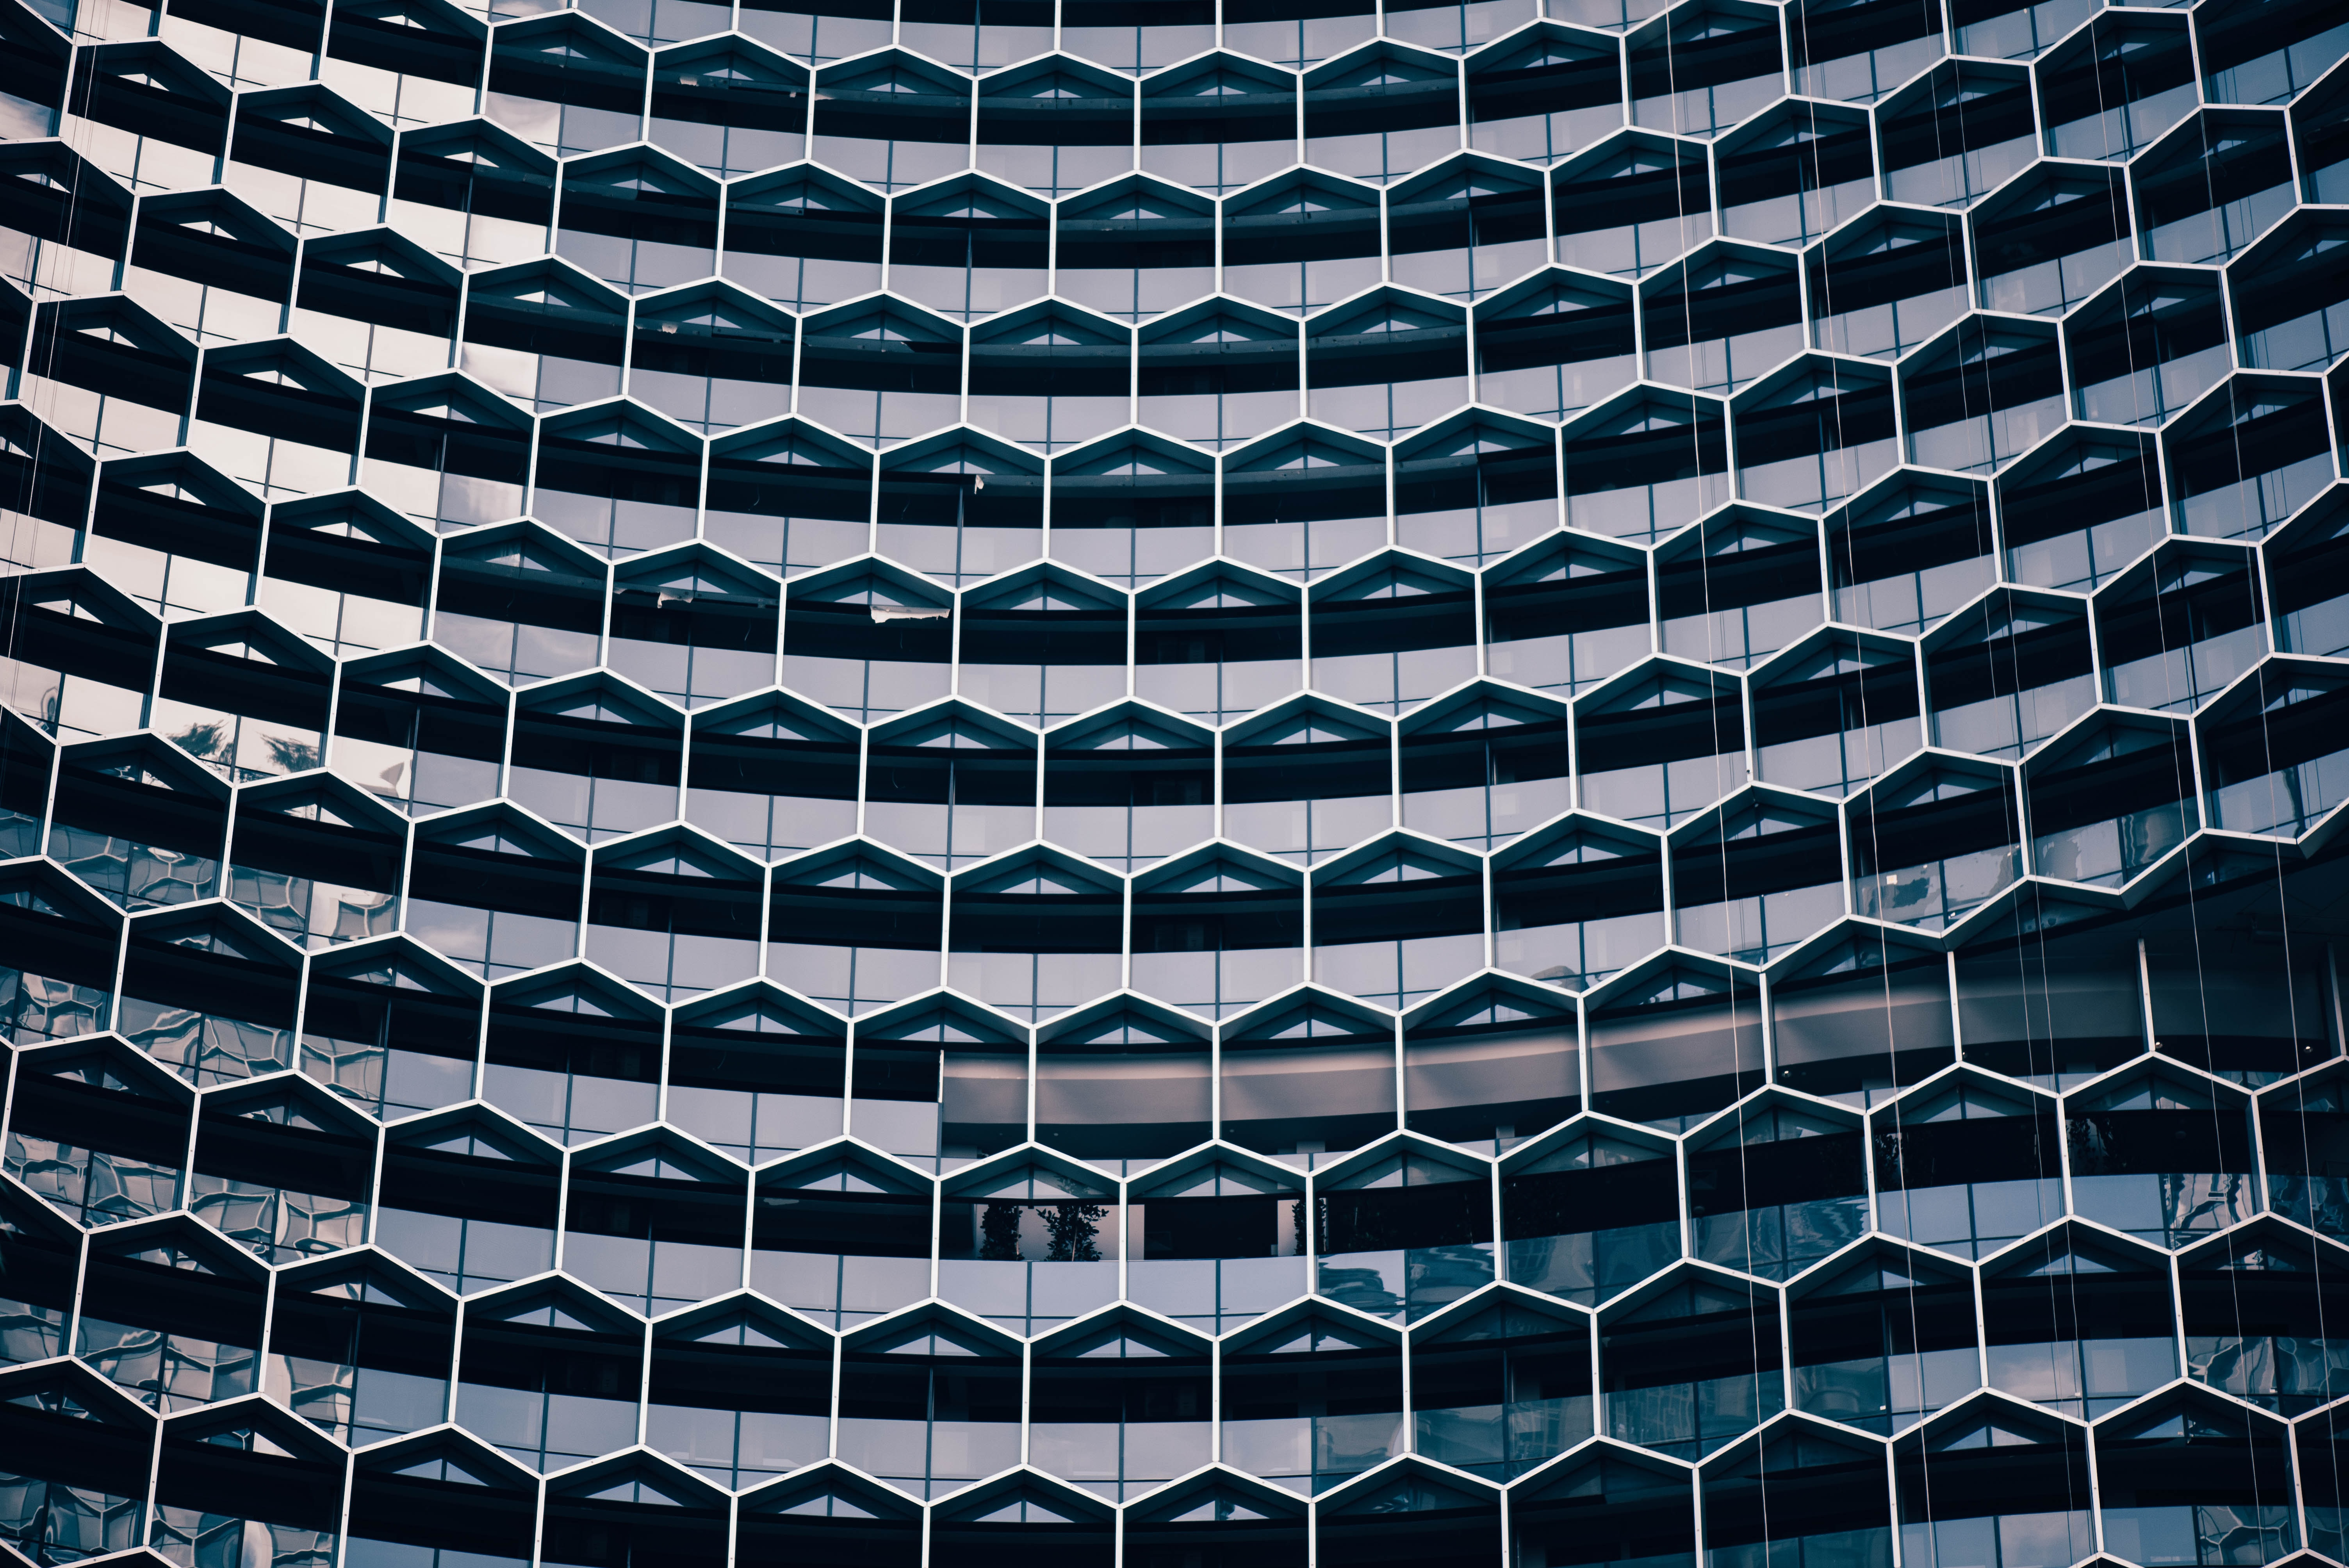 A honeycomb pattern in the facade of a modern office building